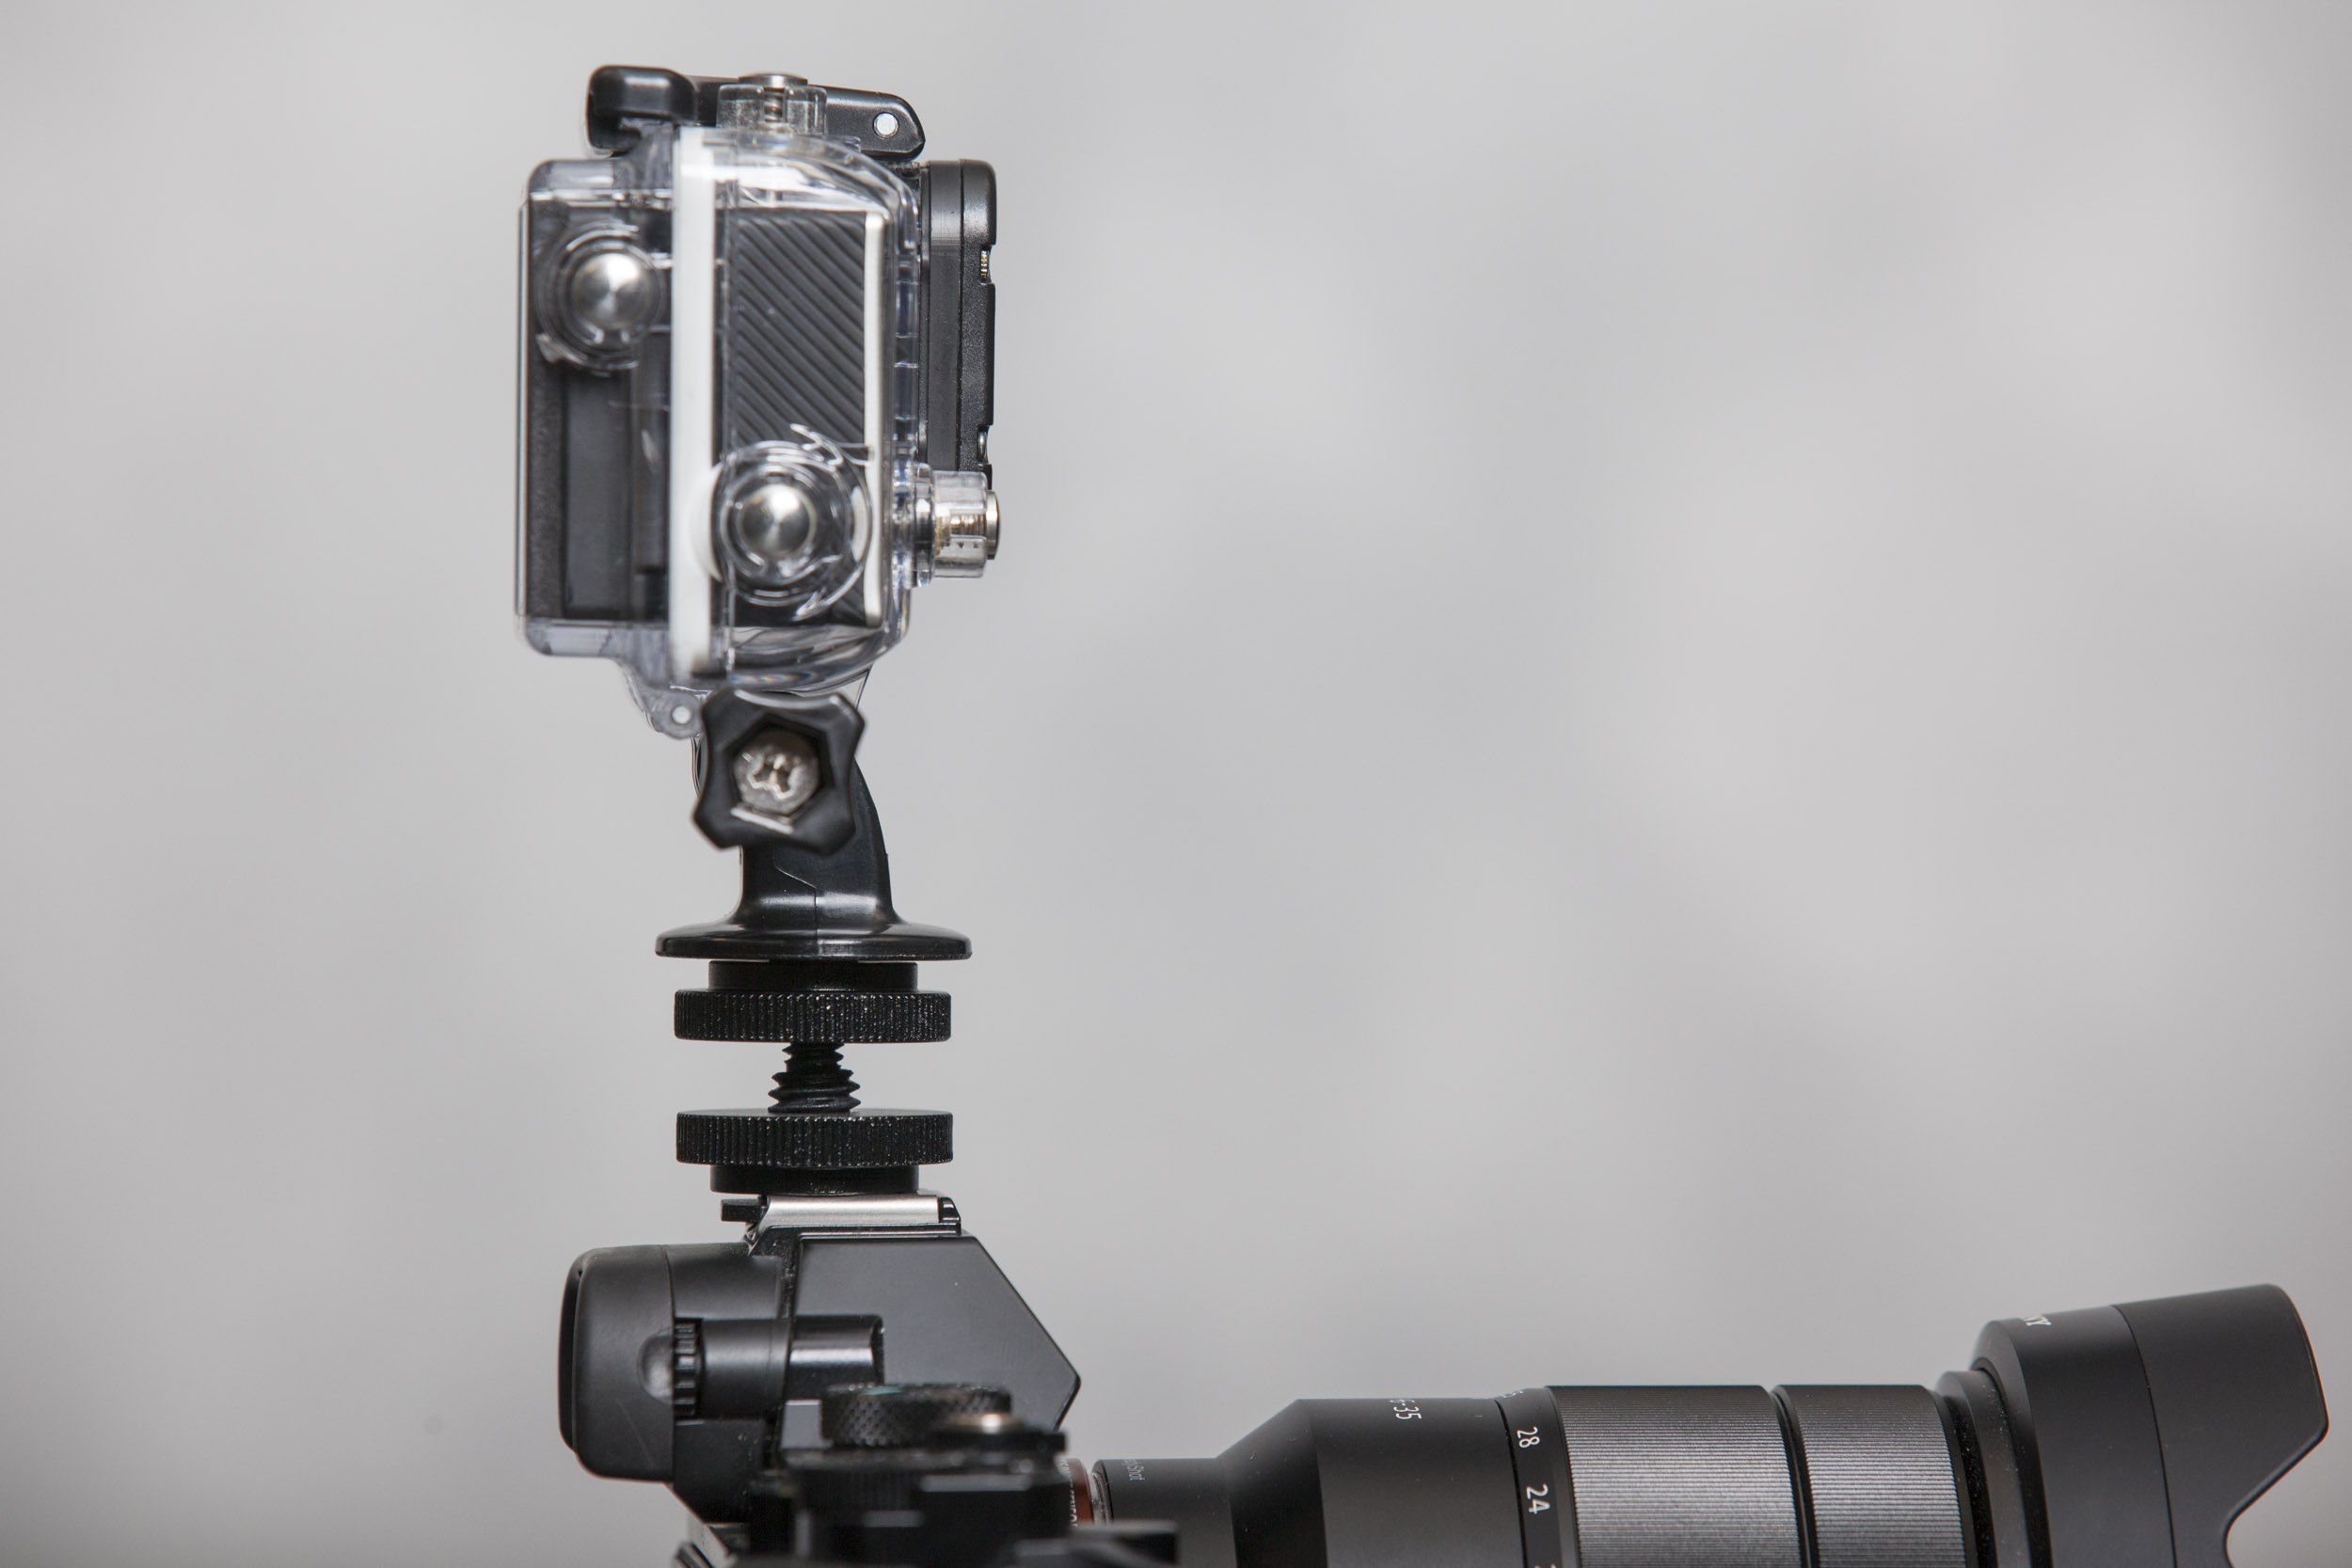 How to Mount a GoPro to a Hot Shoe